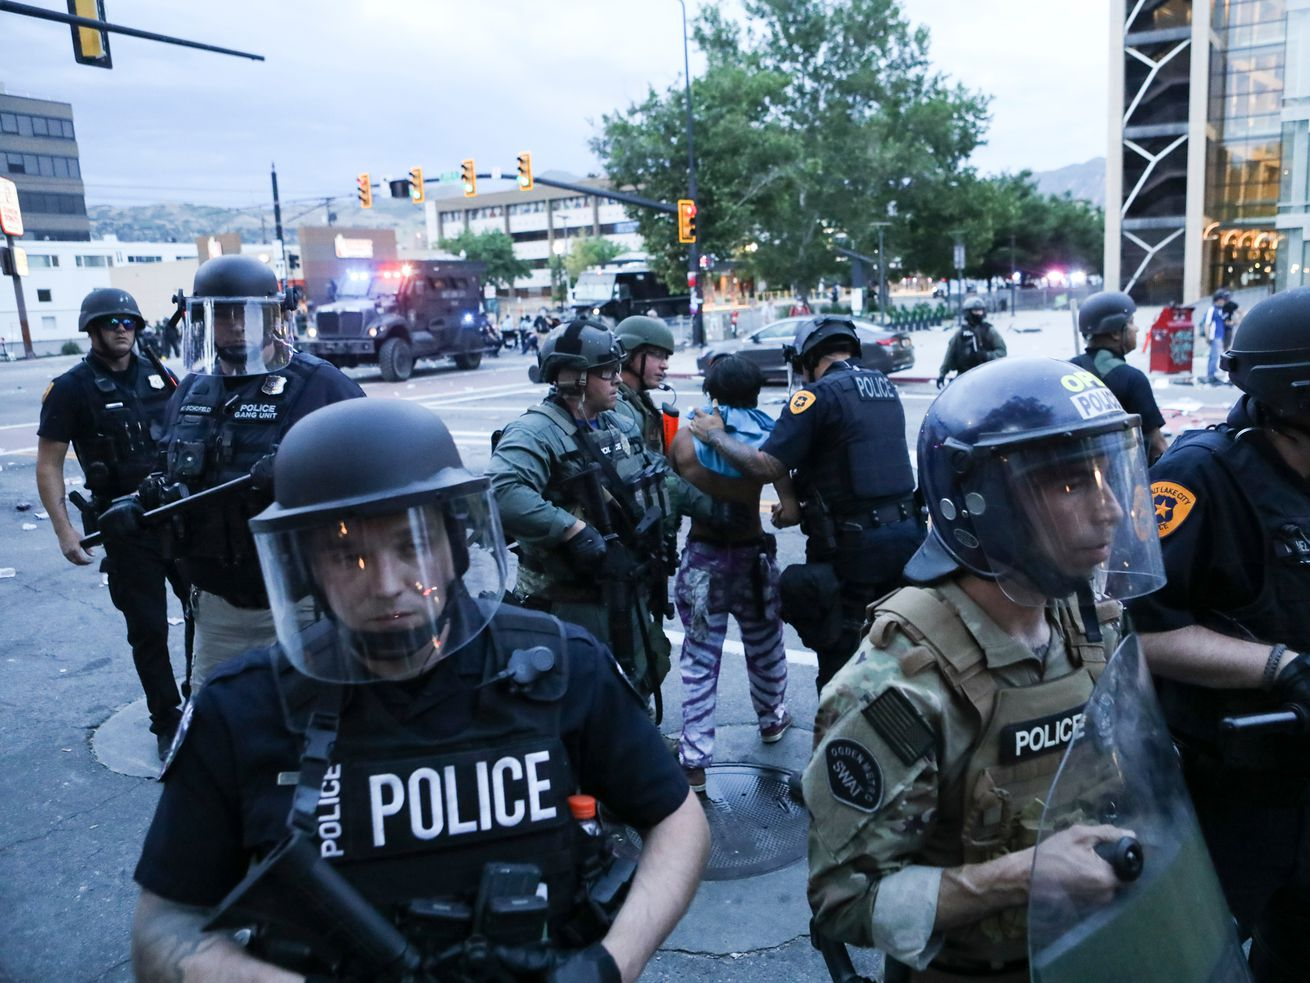 A protester who refused to move when facing off with police while demonstrating against police brutality is taken in by officials in Salt Lake City on Saturday, May 30, 2020. Daylong protests moved across the city Saturday after a peaceful demonstration to decry the death of George Floyd in police custody in Minneapolis turned violent.